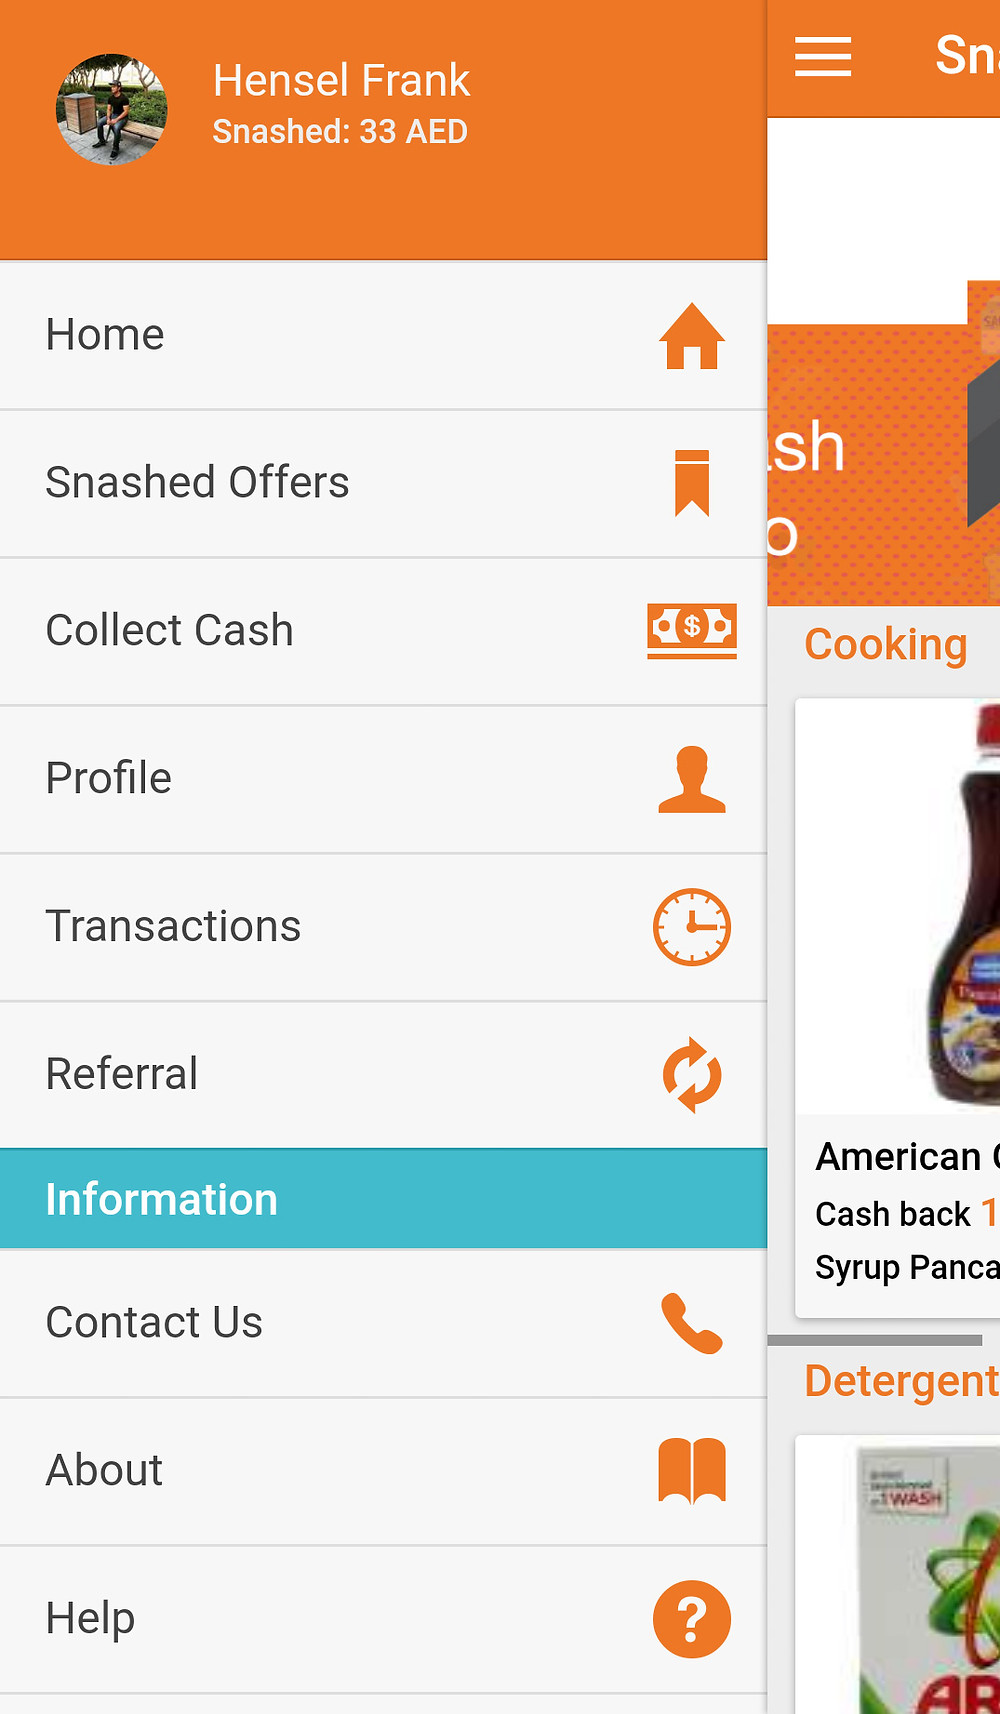 A screenshot of the Snash app displaying the online wallet and snashed offers.